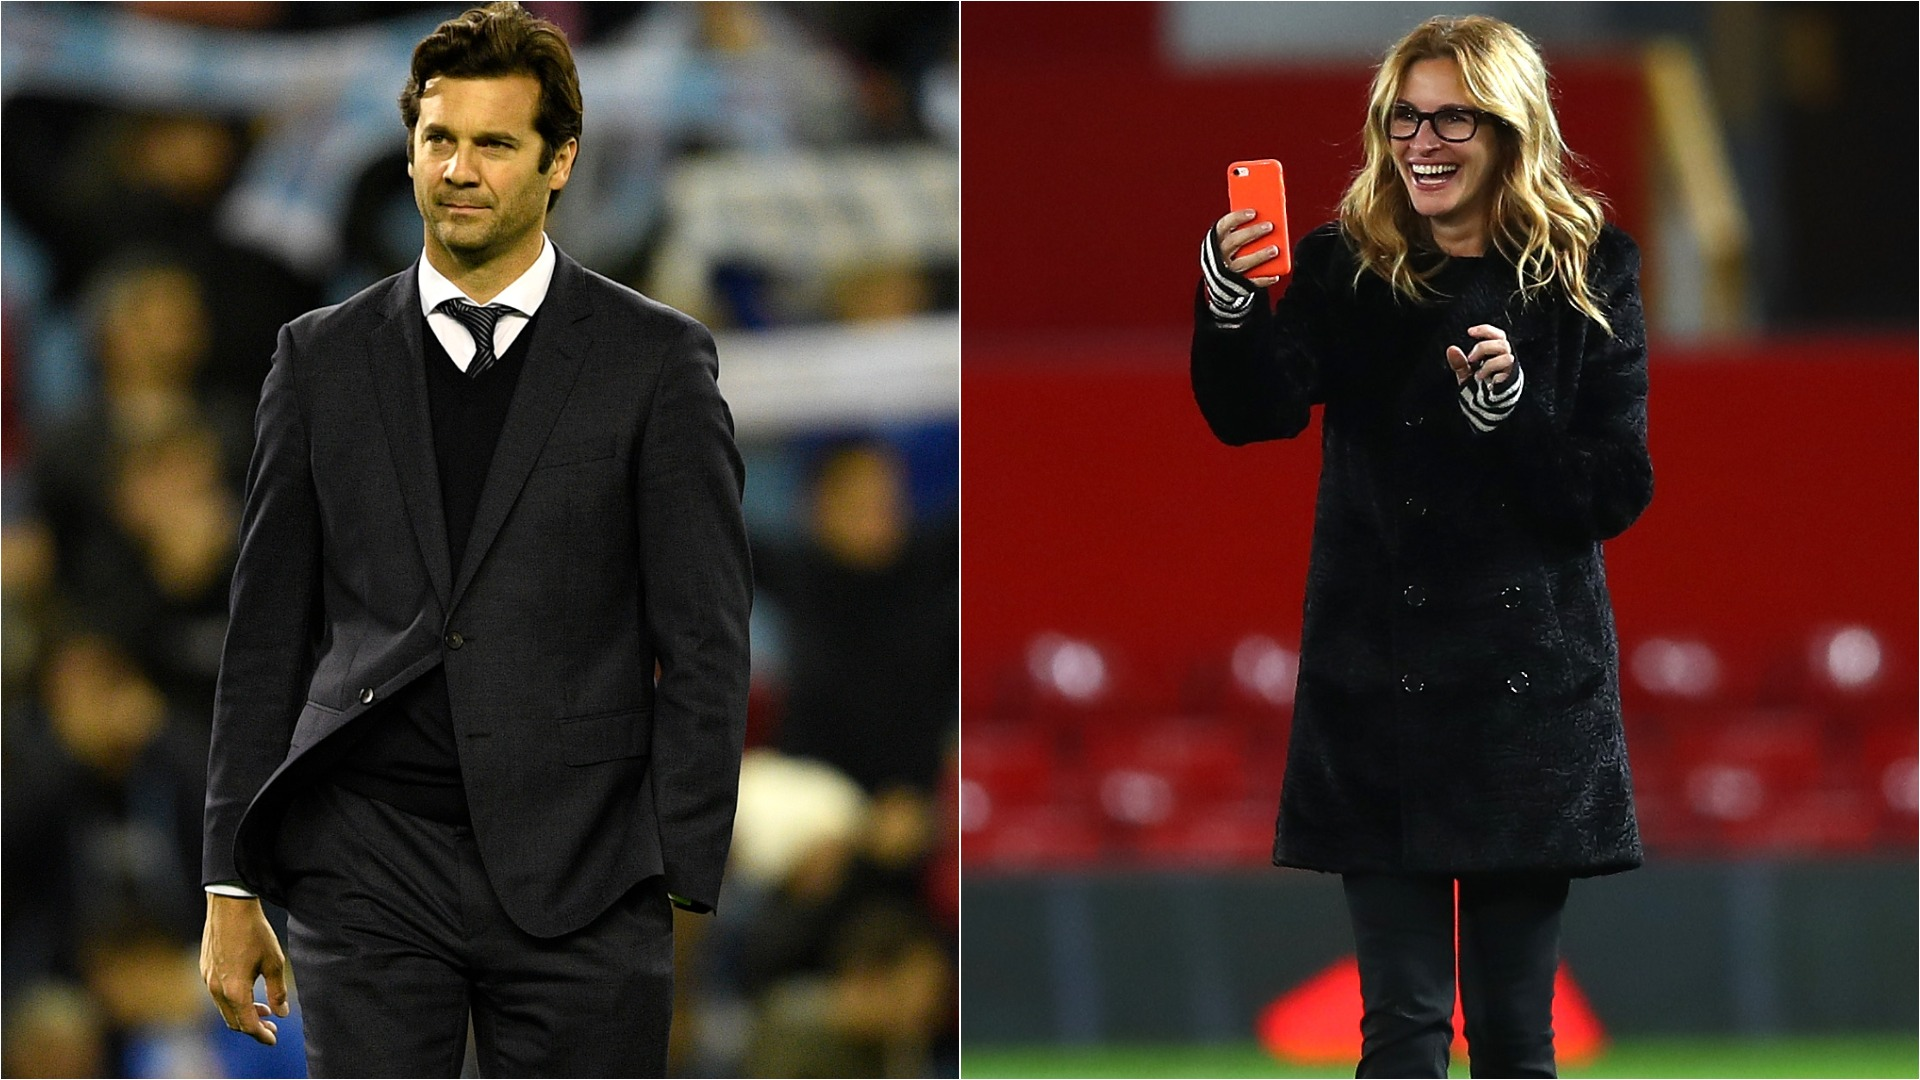 Real Madrid have more suitors than Julia Roberts! Solari unconcerned by Mourinho rumours